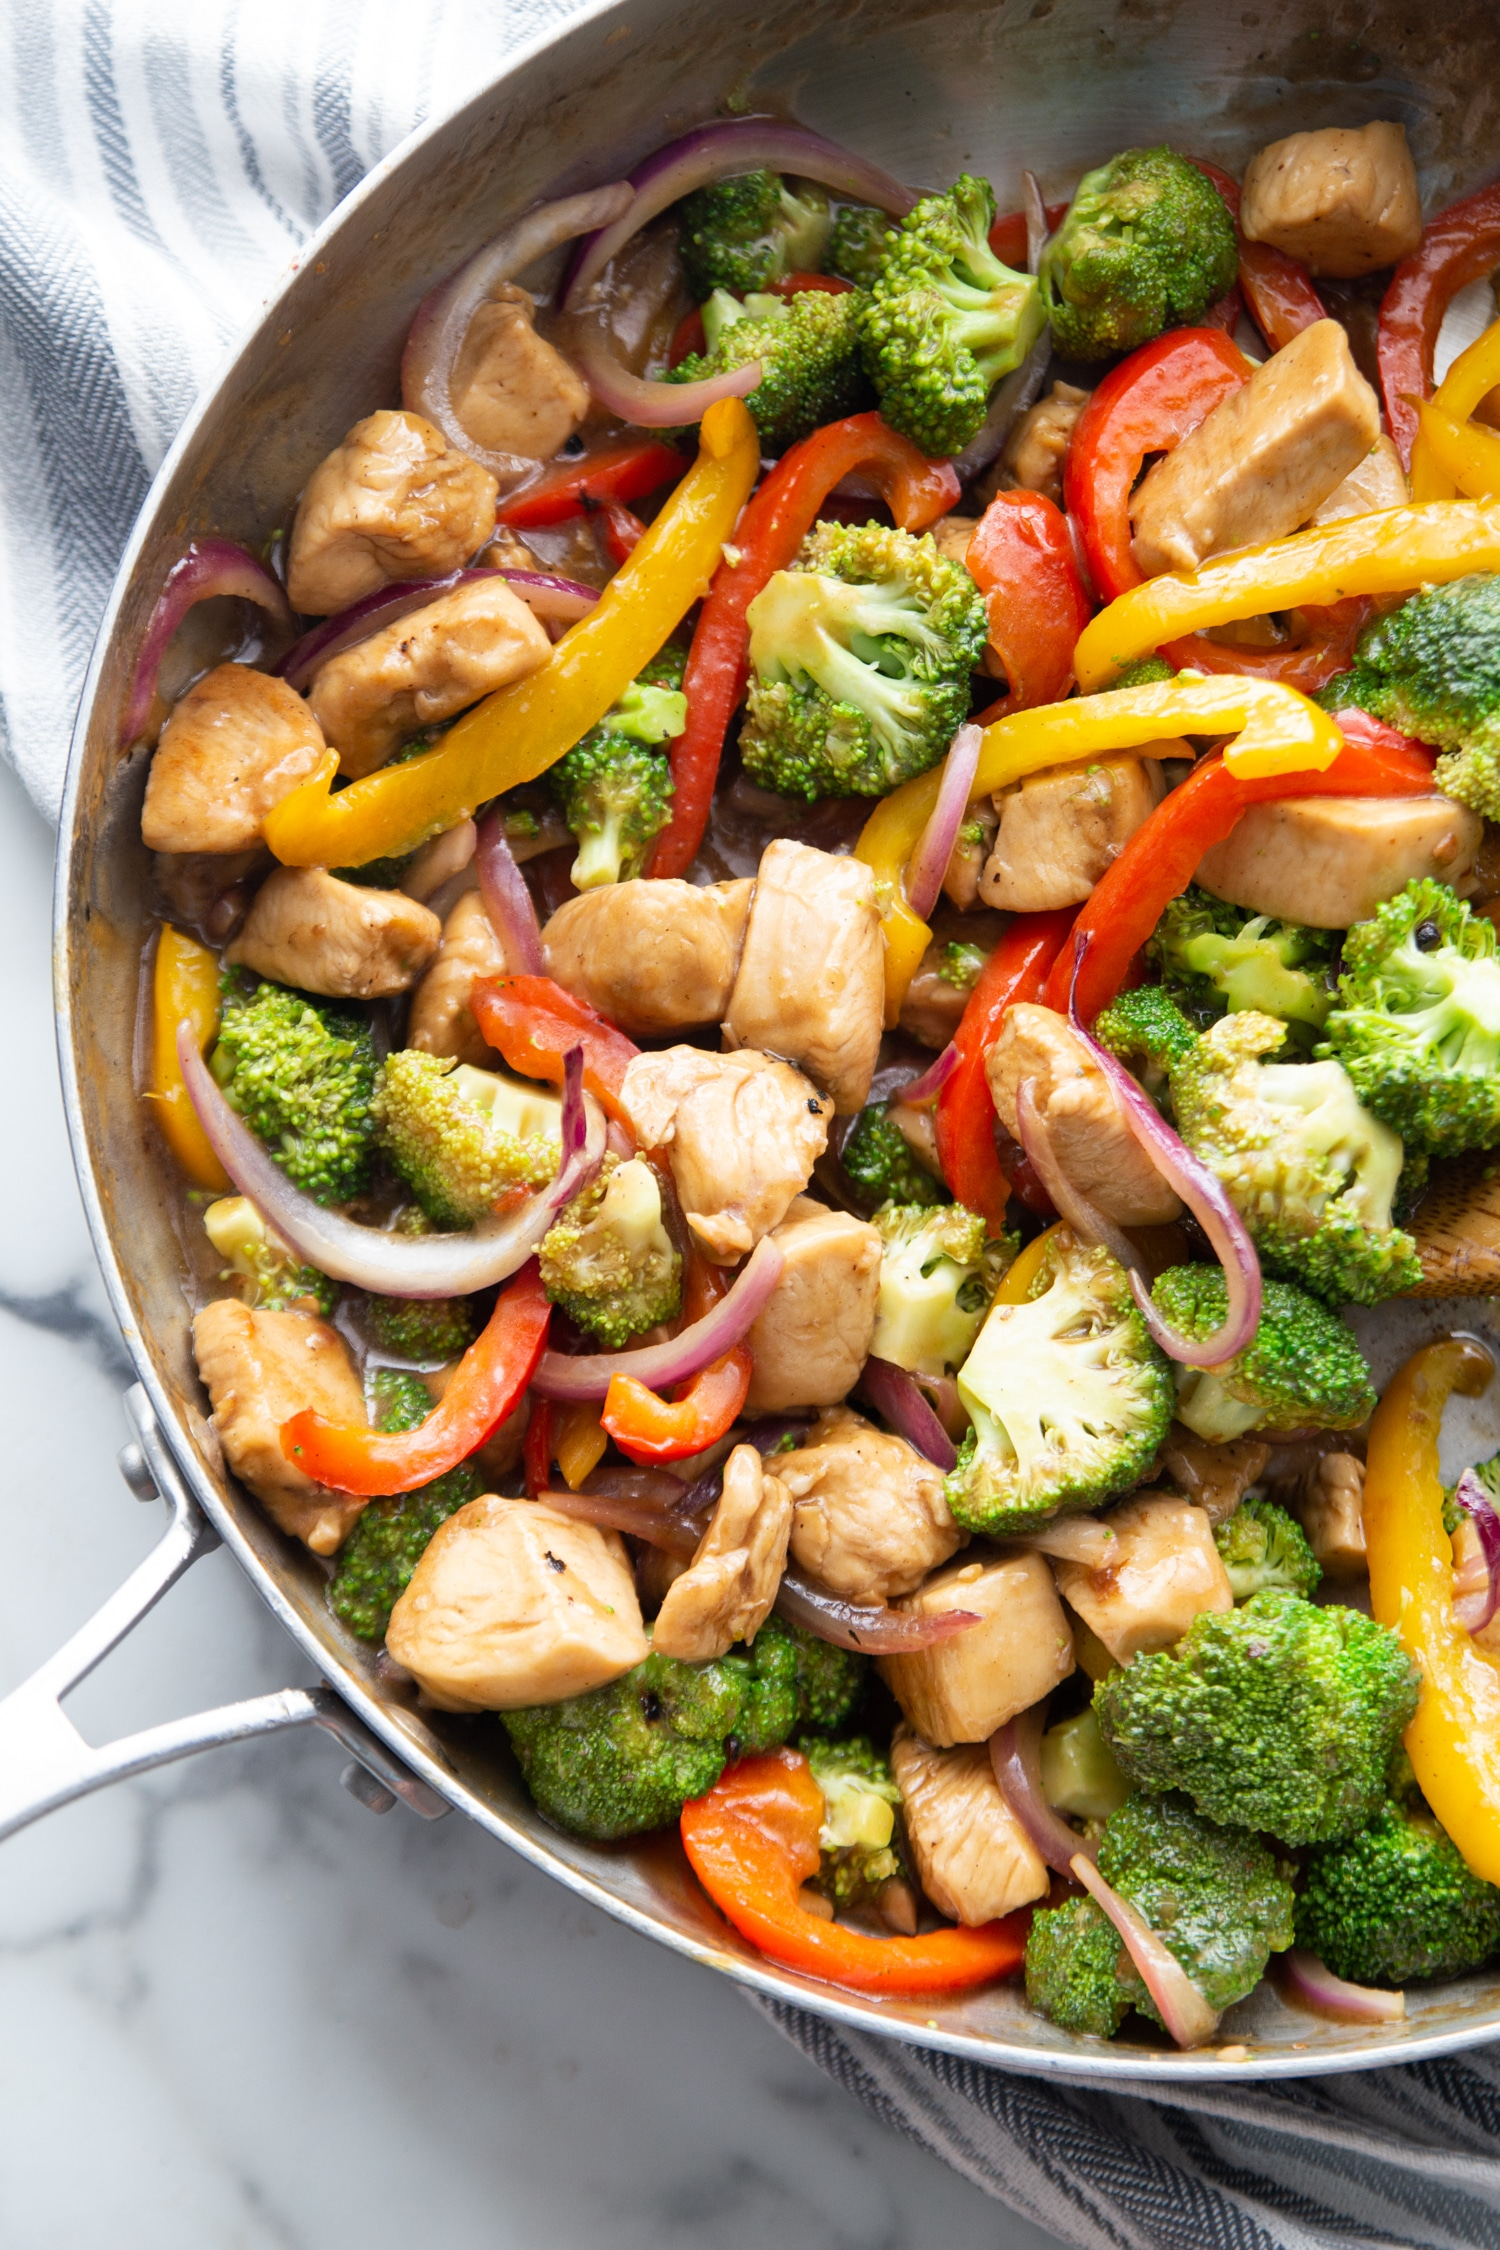 stir fry in a pan with veggies, chicken and sauce